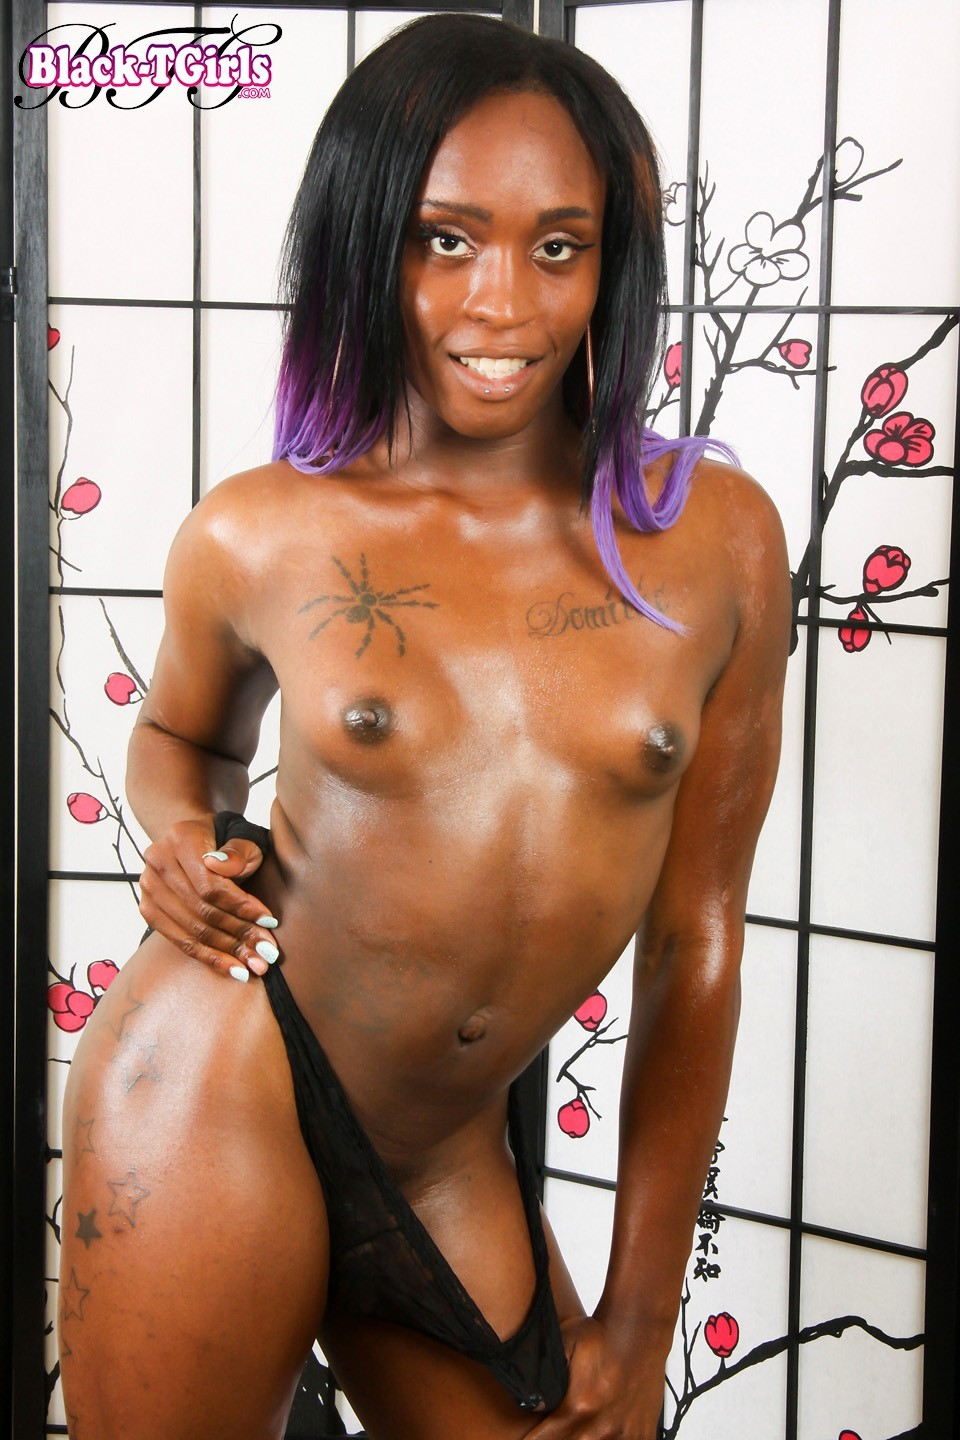 Shay Is A Naughty Girl With A Sensuous All Natural Body, Superb Bub